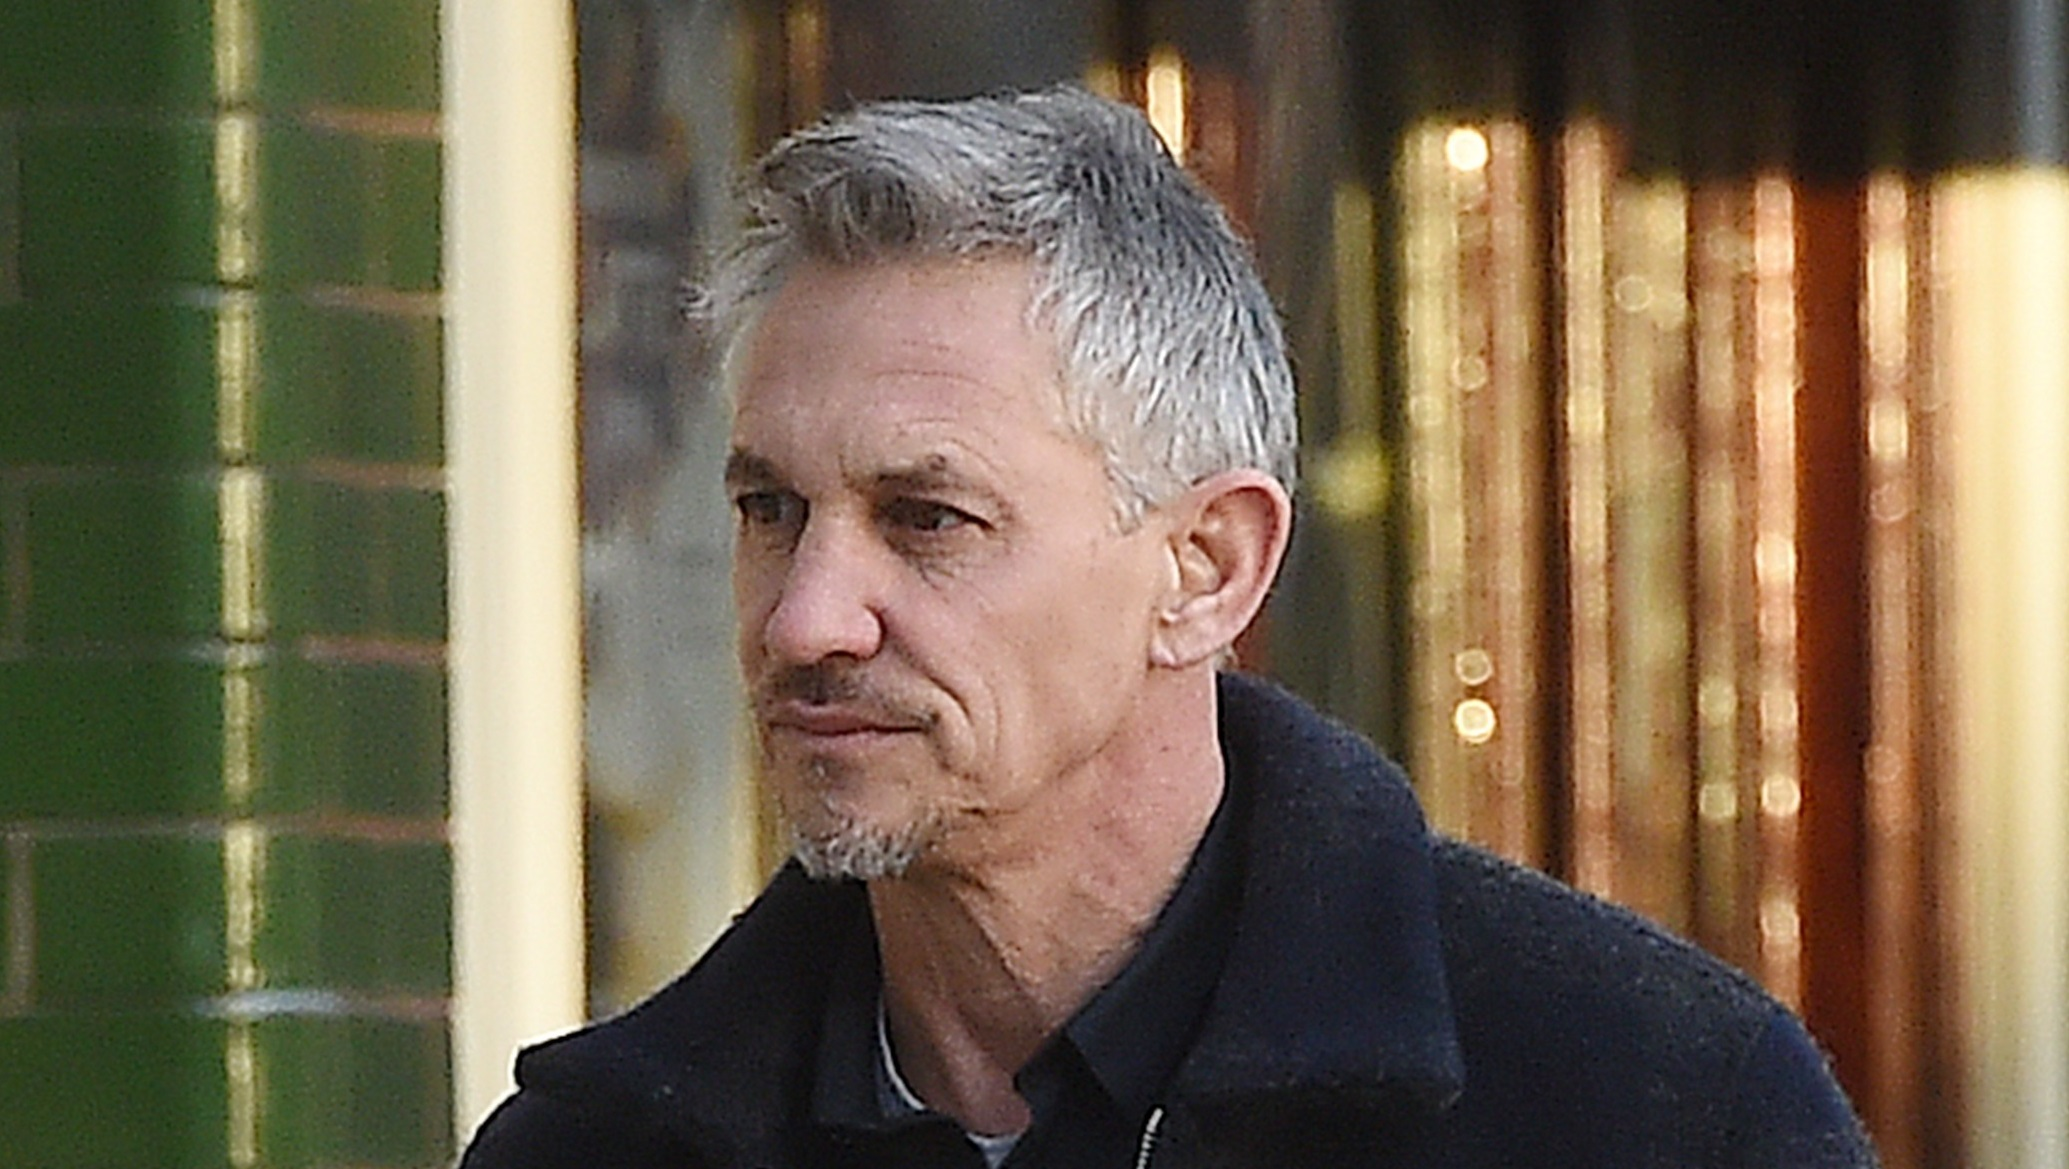 Nude Gary Lineker forced to cover his bum in new advert